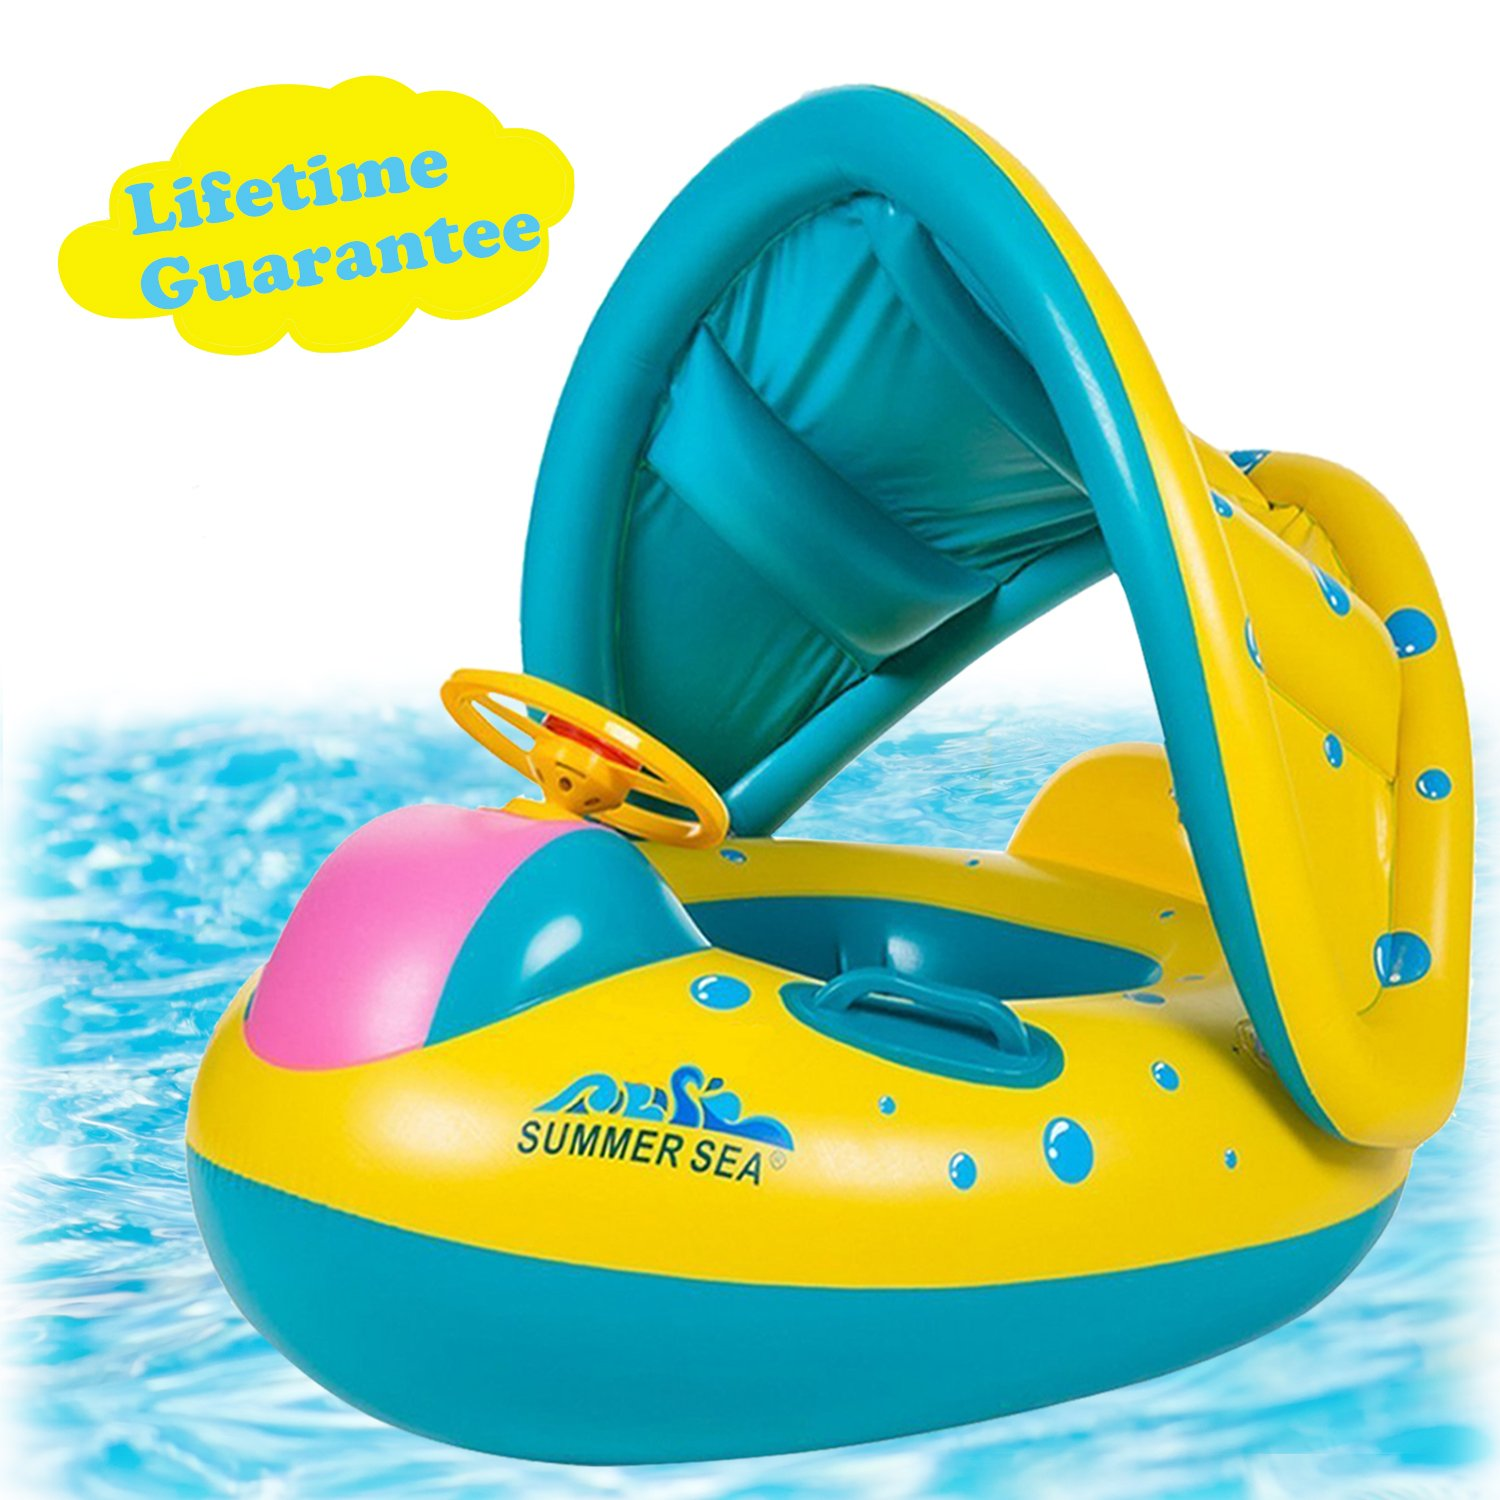 punada Baby Pool Float with Canopy Inflatable Swimming Floats for Kids by punada